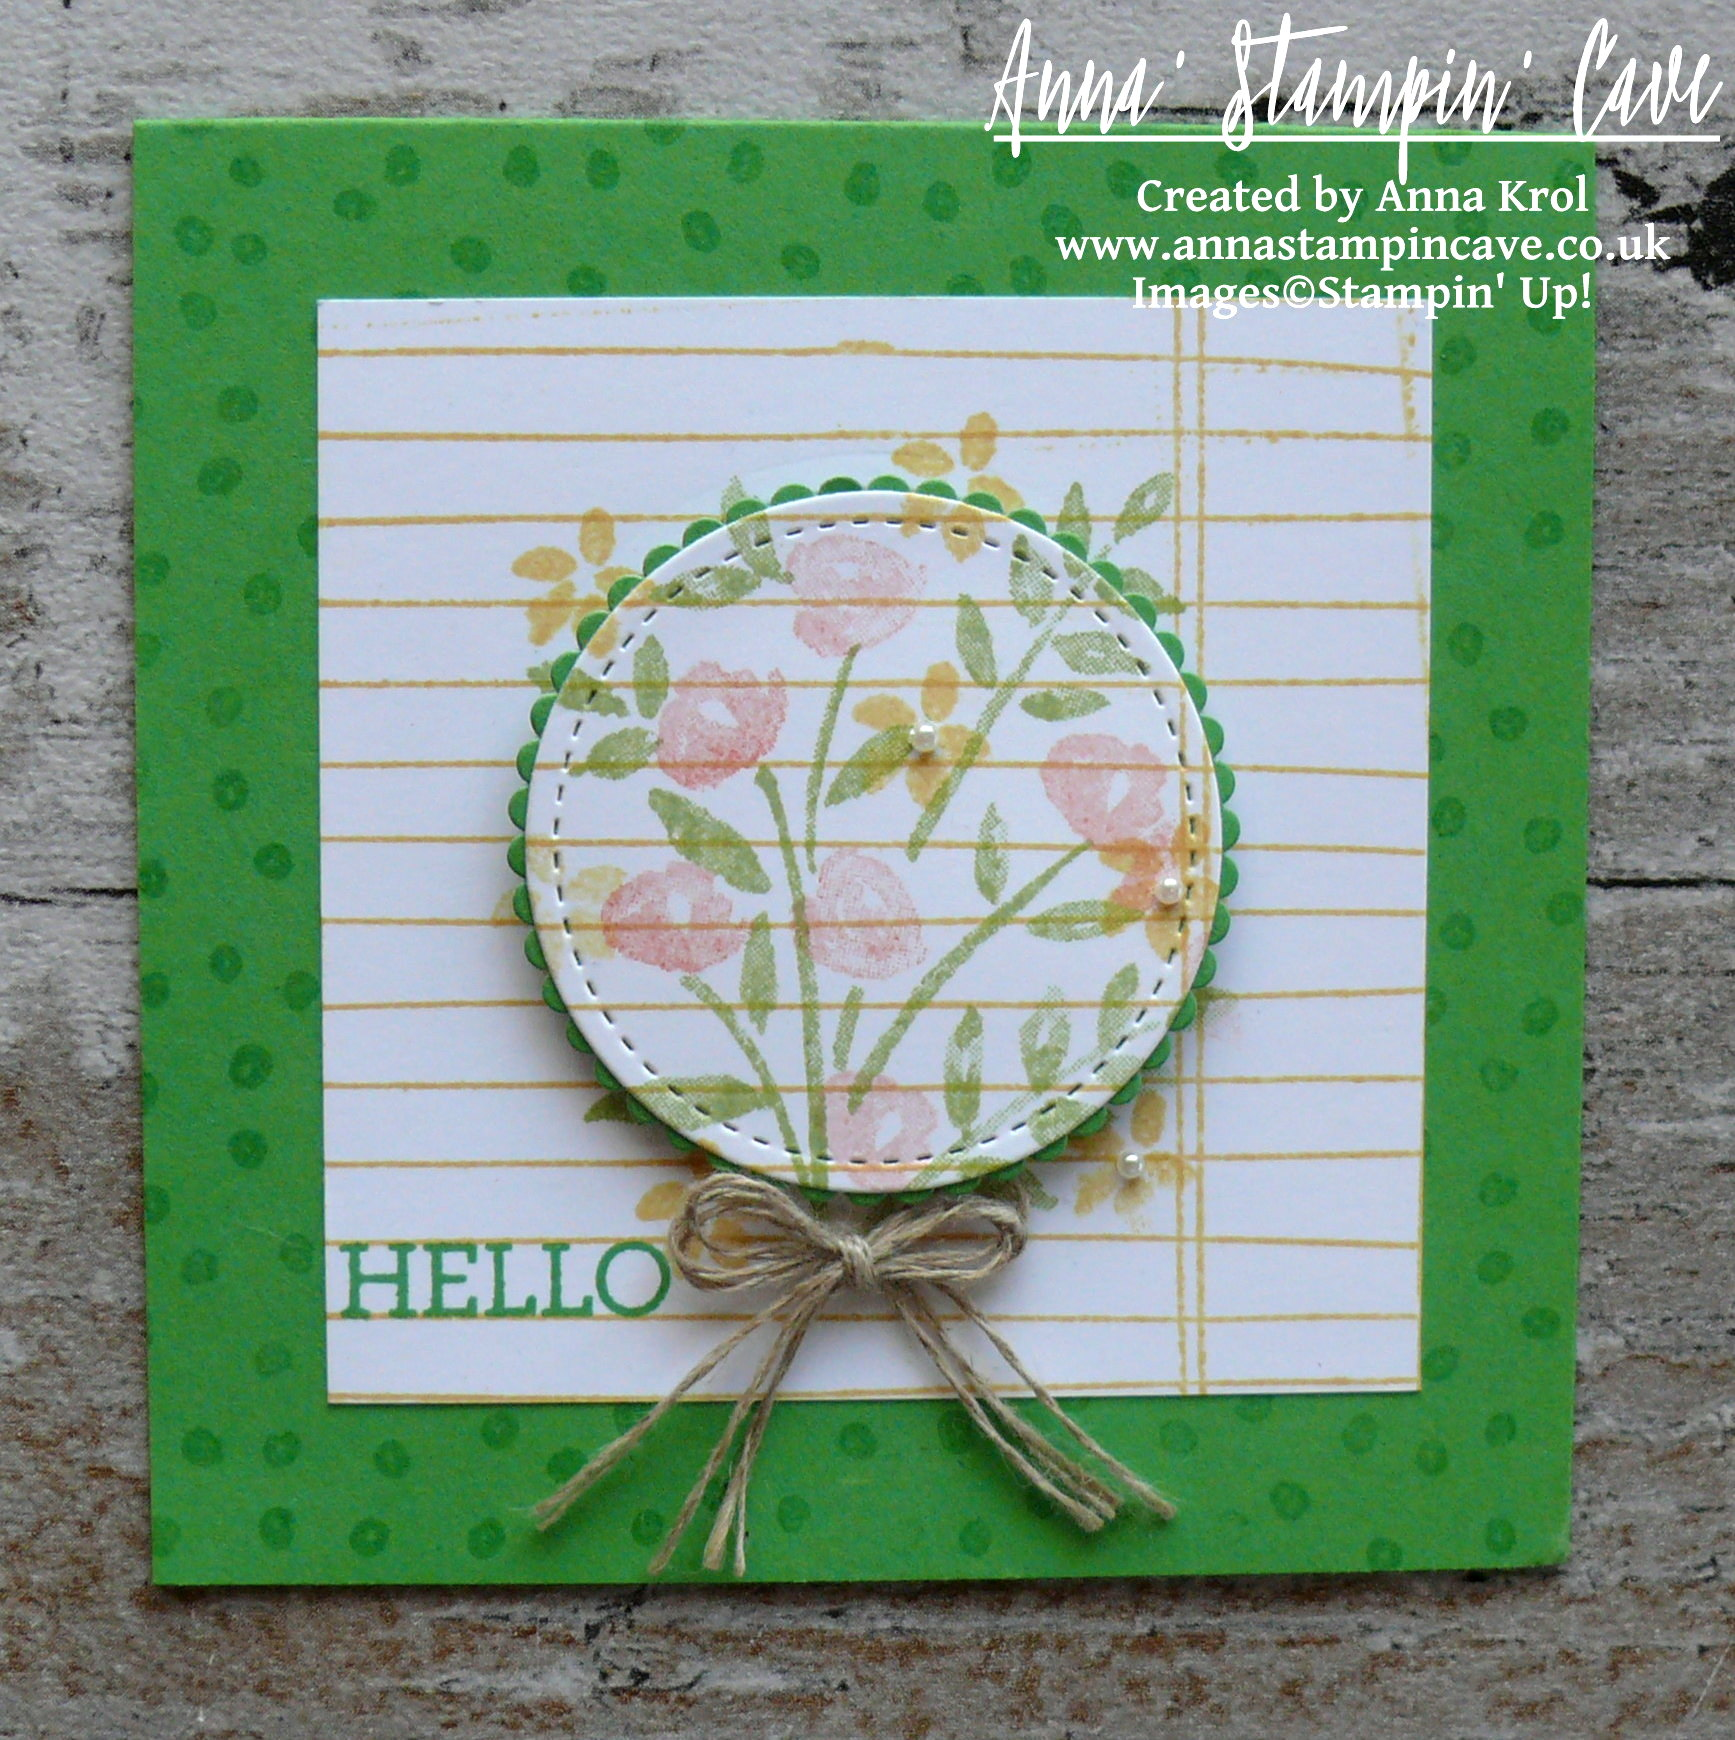 Anna' Stampin' Cave - Stampin' Up! Number Of Years Stamp Set - Hello Spring Cucumber Crush Notecard